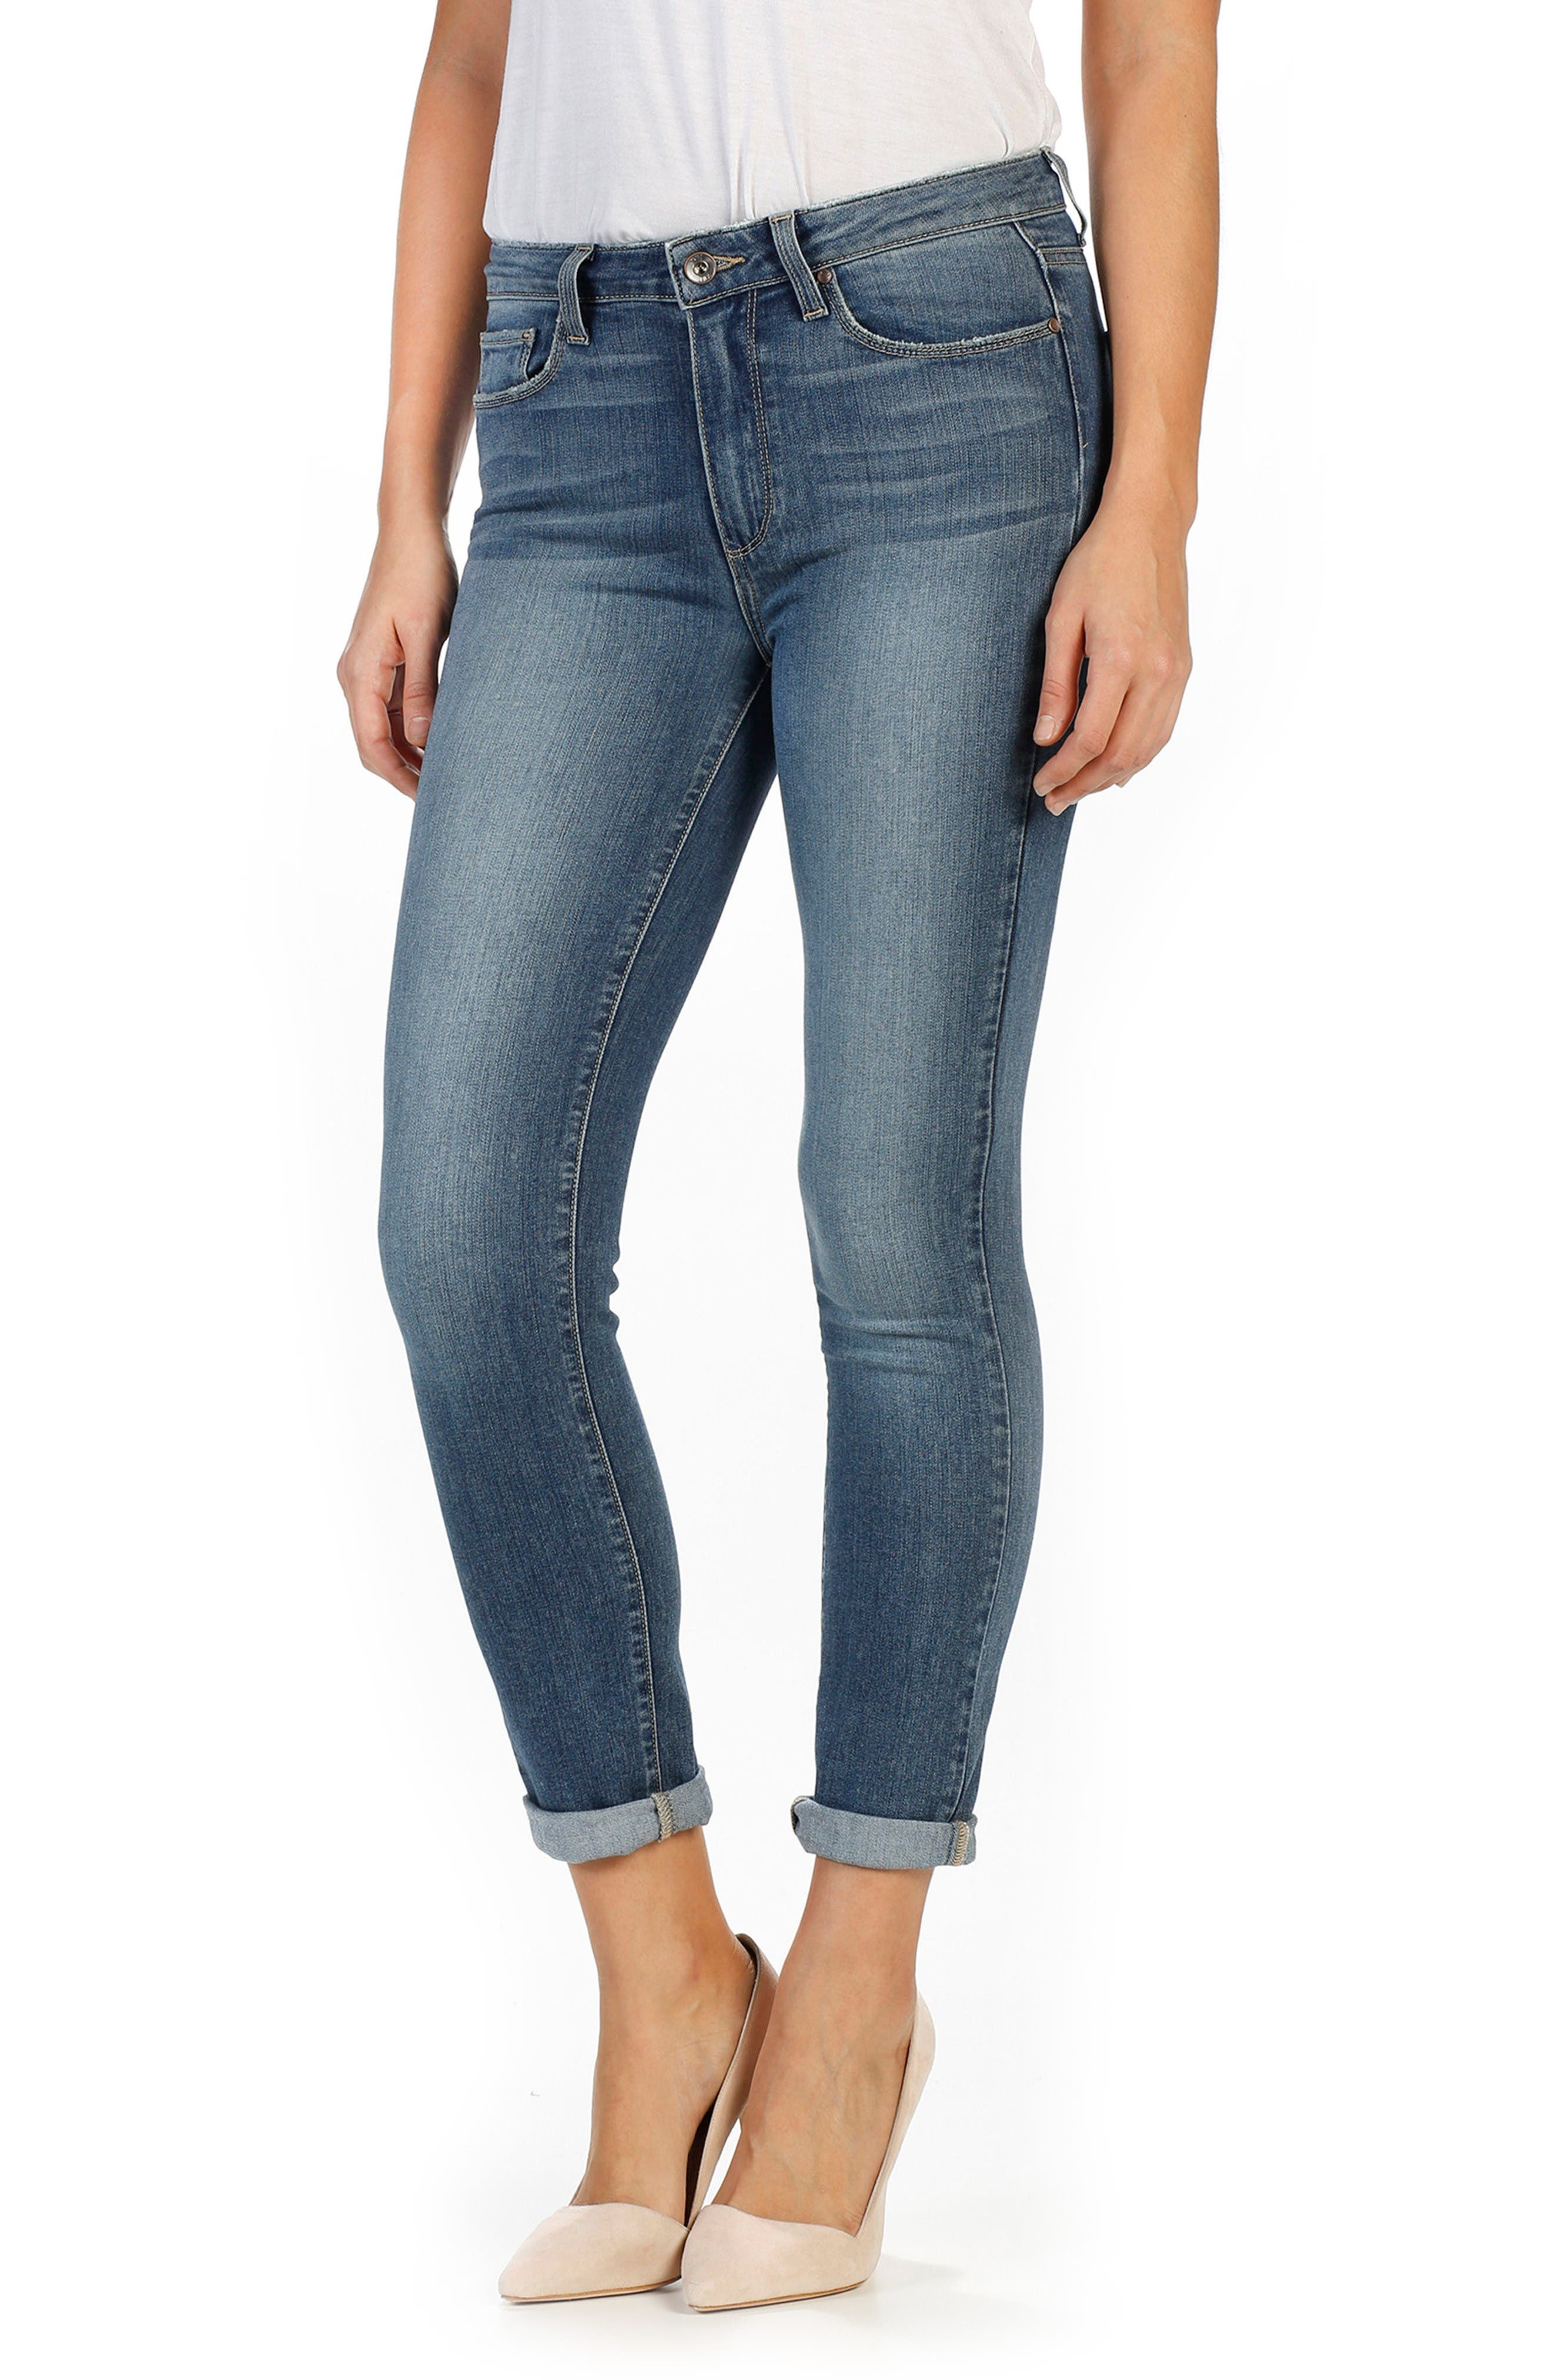 Alternate Image 1 Selected - PAIGE Transcend - Hoxton High Waist Crop Skinny Jeans (Kalina)